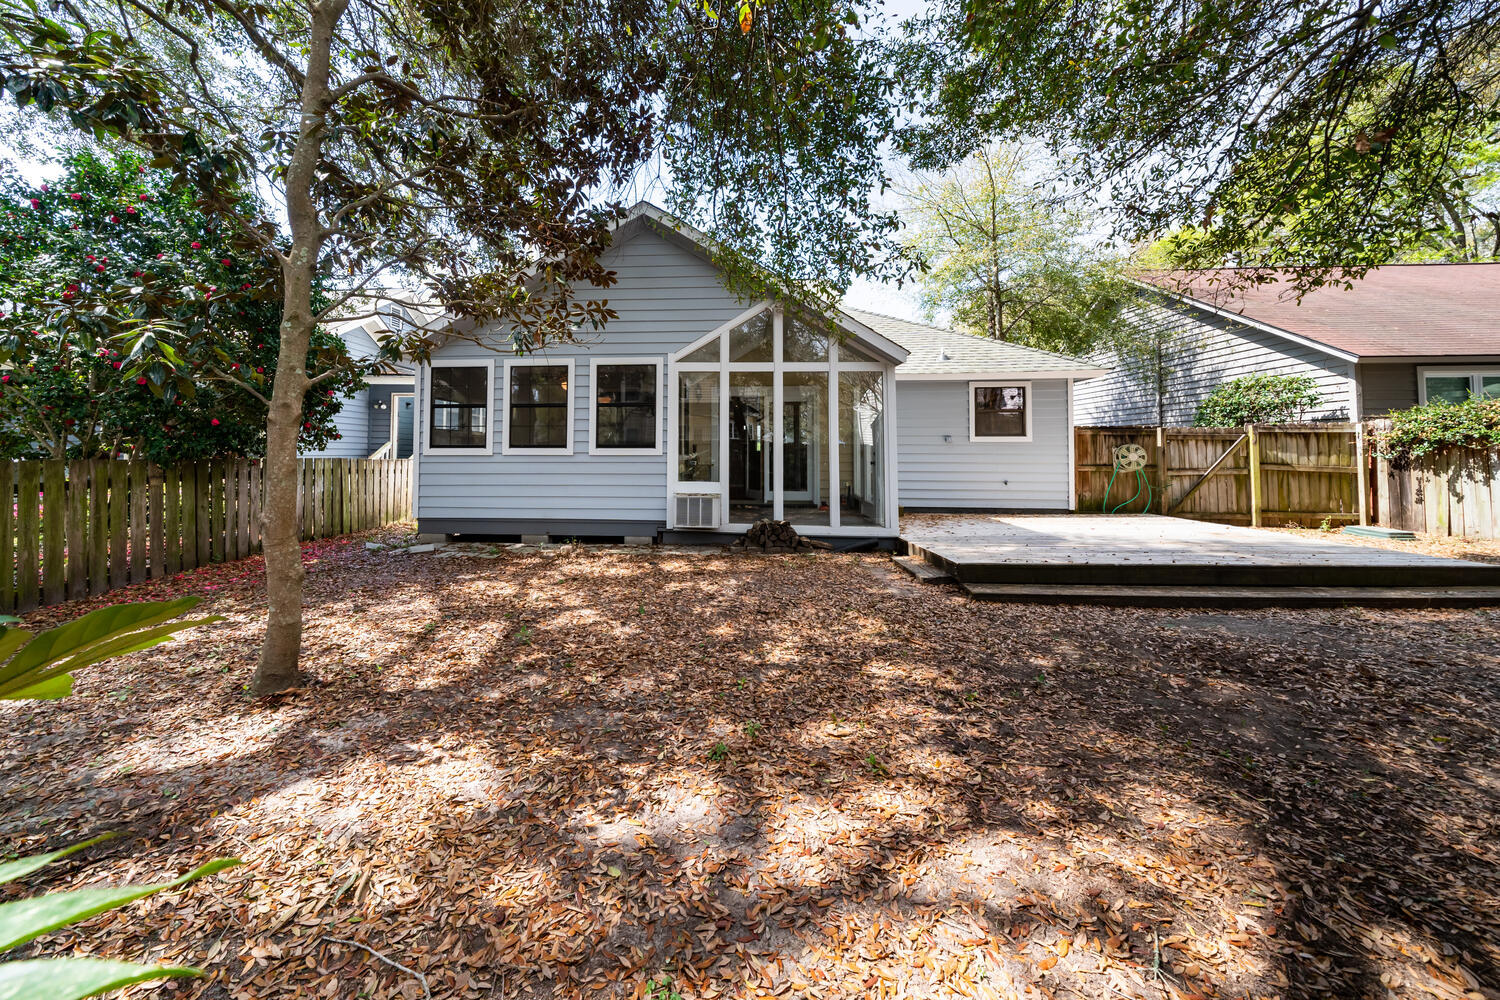 Pirates Cove Homes For Sale - 1510 Privateer, Mount Pleasant, SC - 1